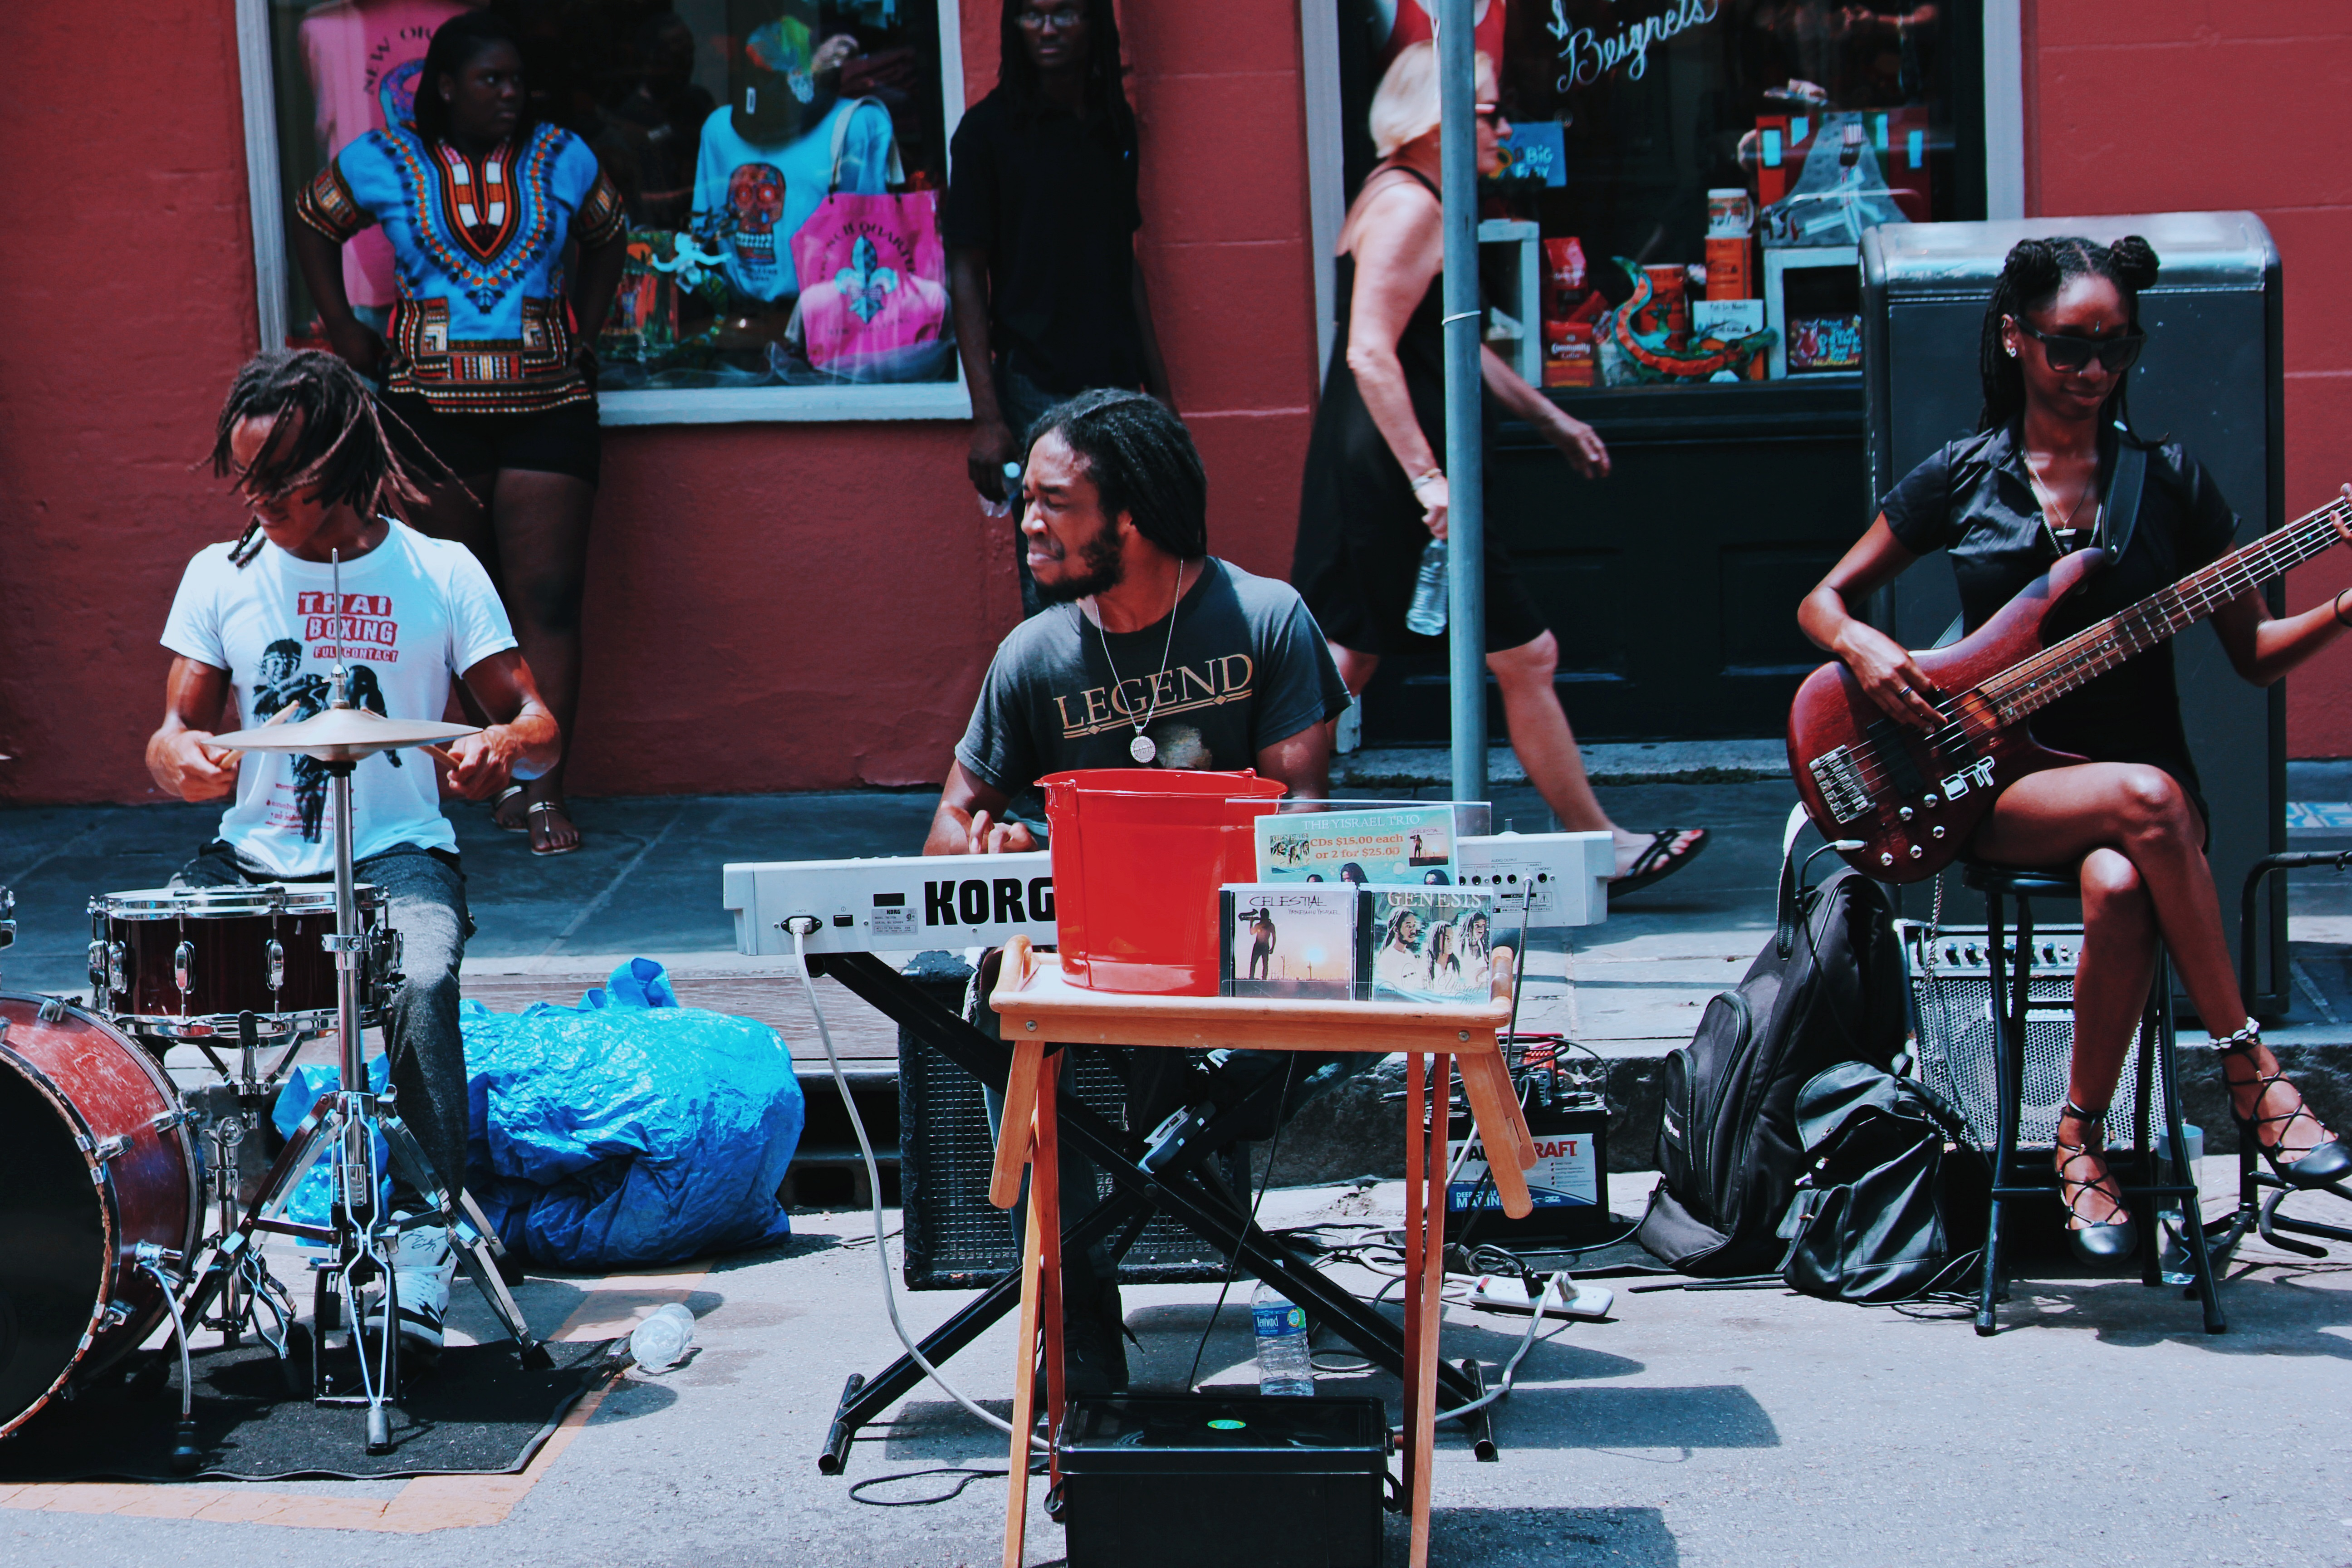 The band Ysrael performing in the sun at the French Quarter - Laura Deberle New Orleans Music Photography